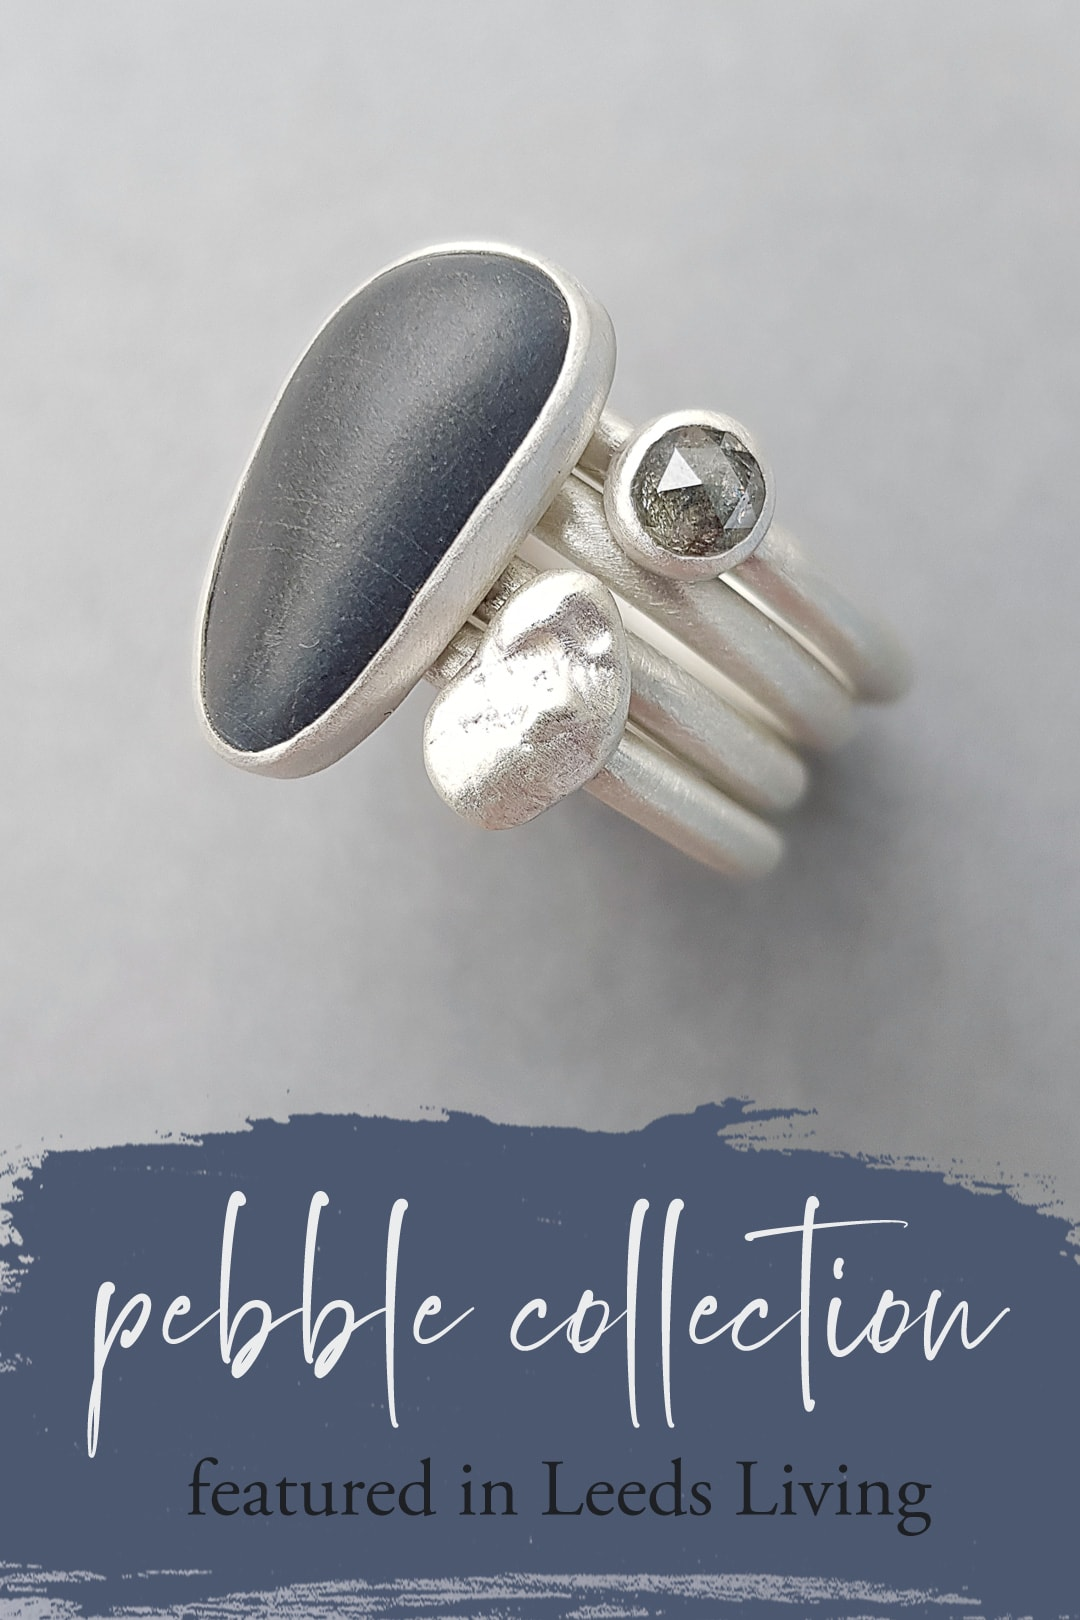 The Pebble Collection featured in Leeds Living